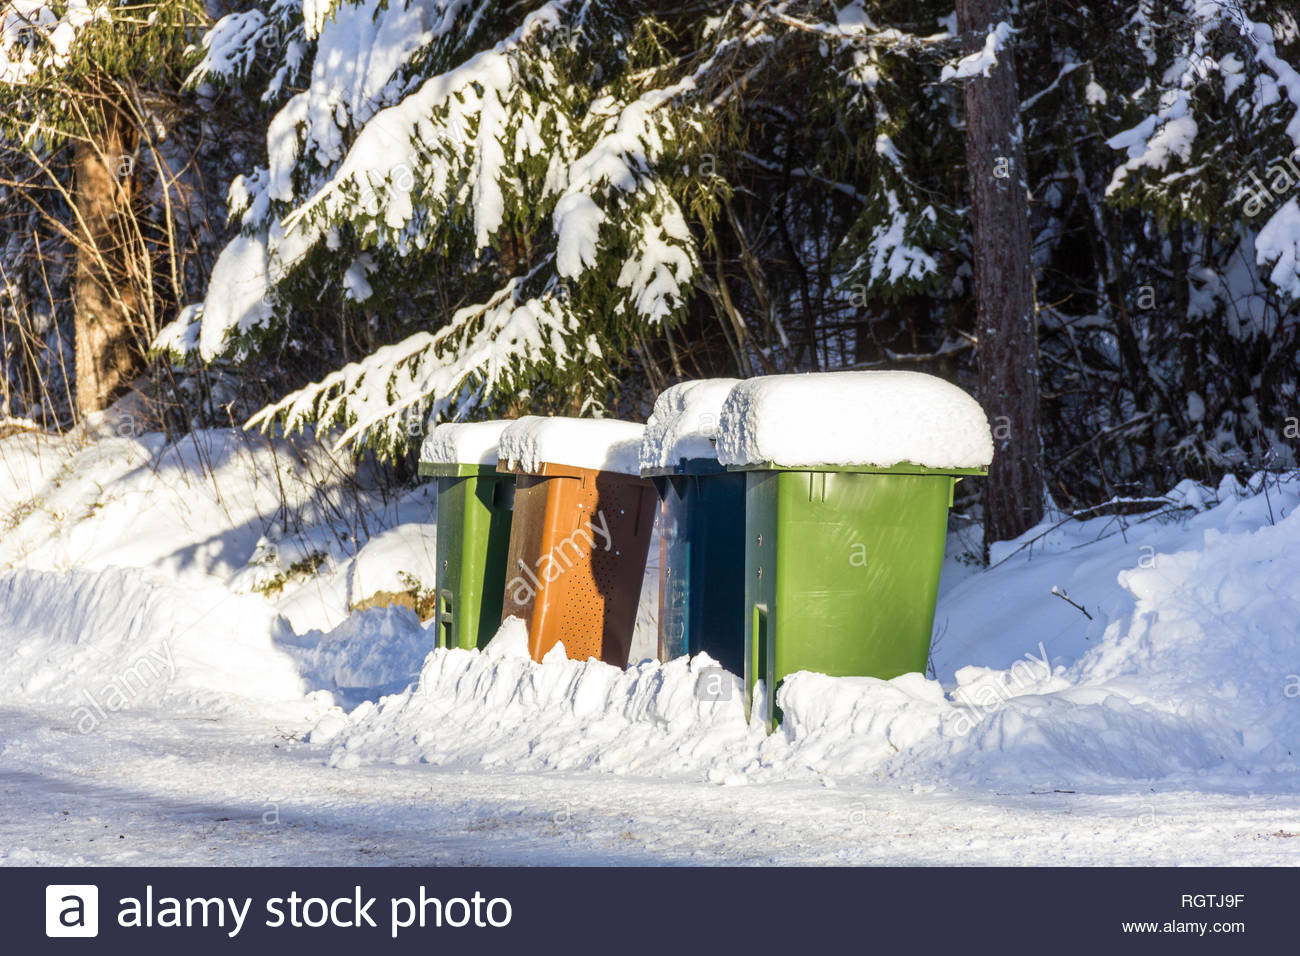 Trash cans covered with snow standing along a path - Stock Image